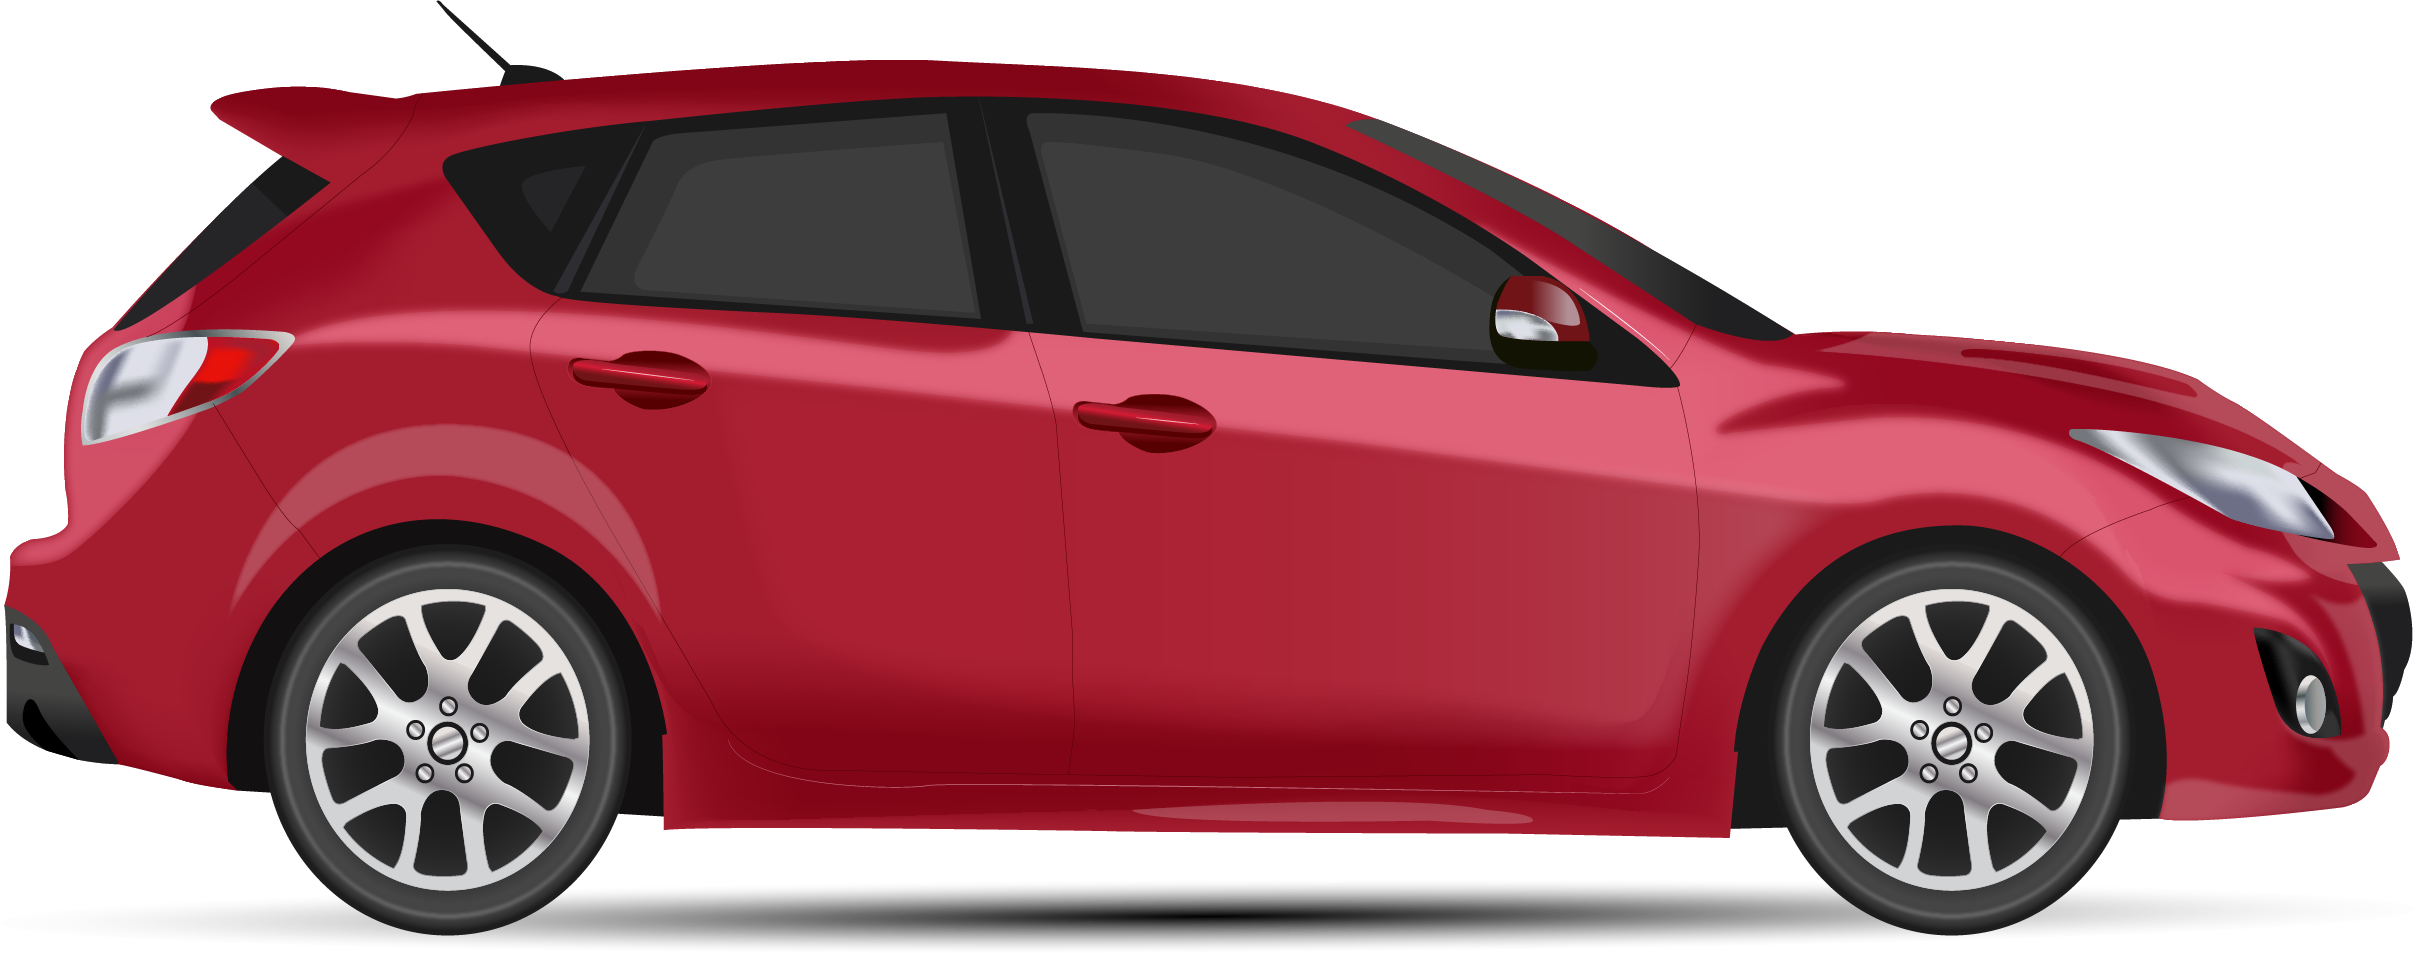 royalty free download car clipart png car clipart png image